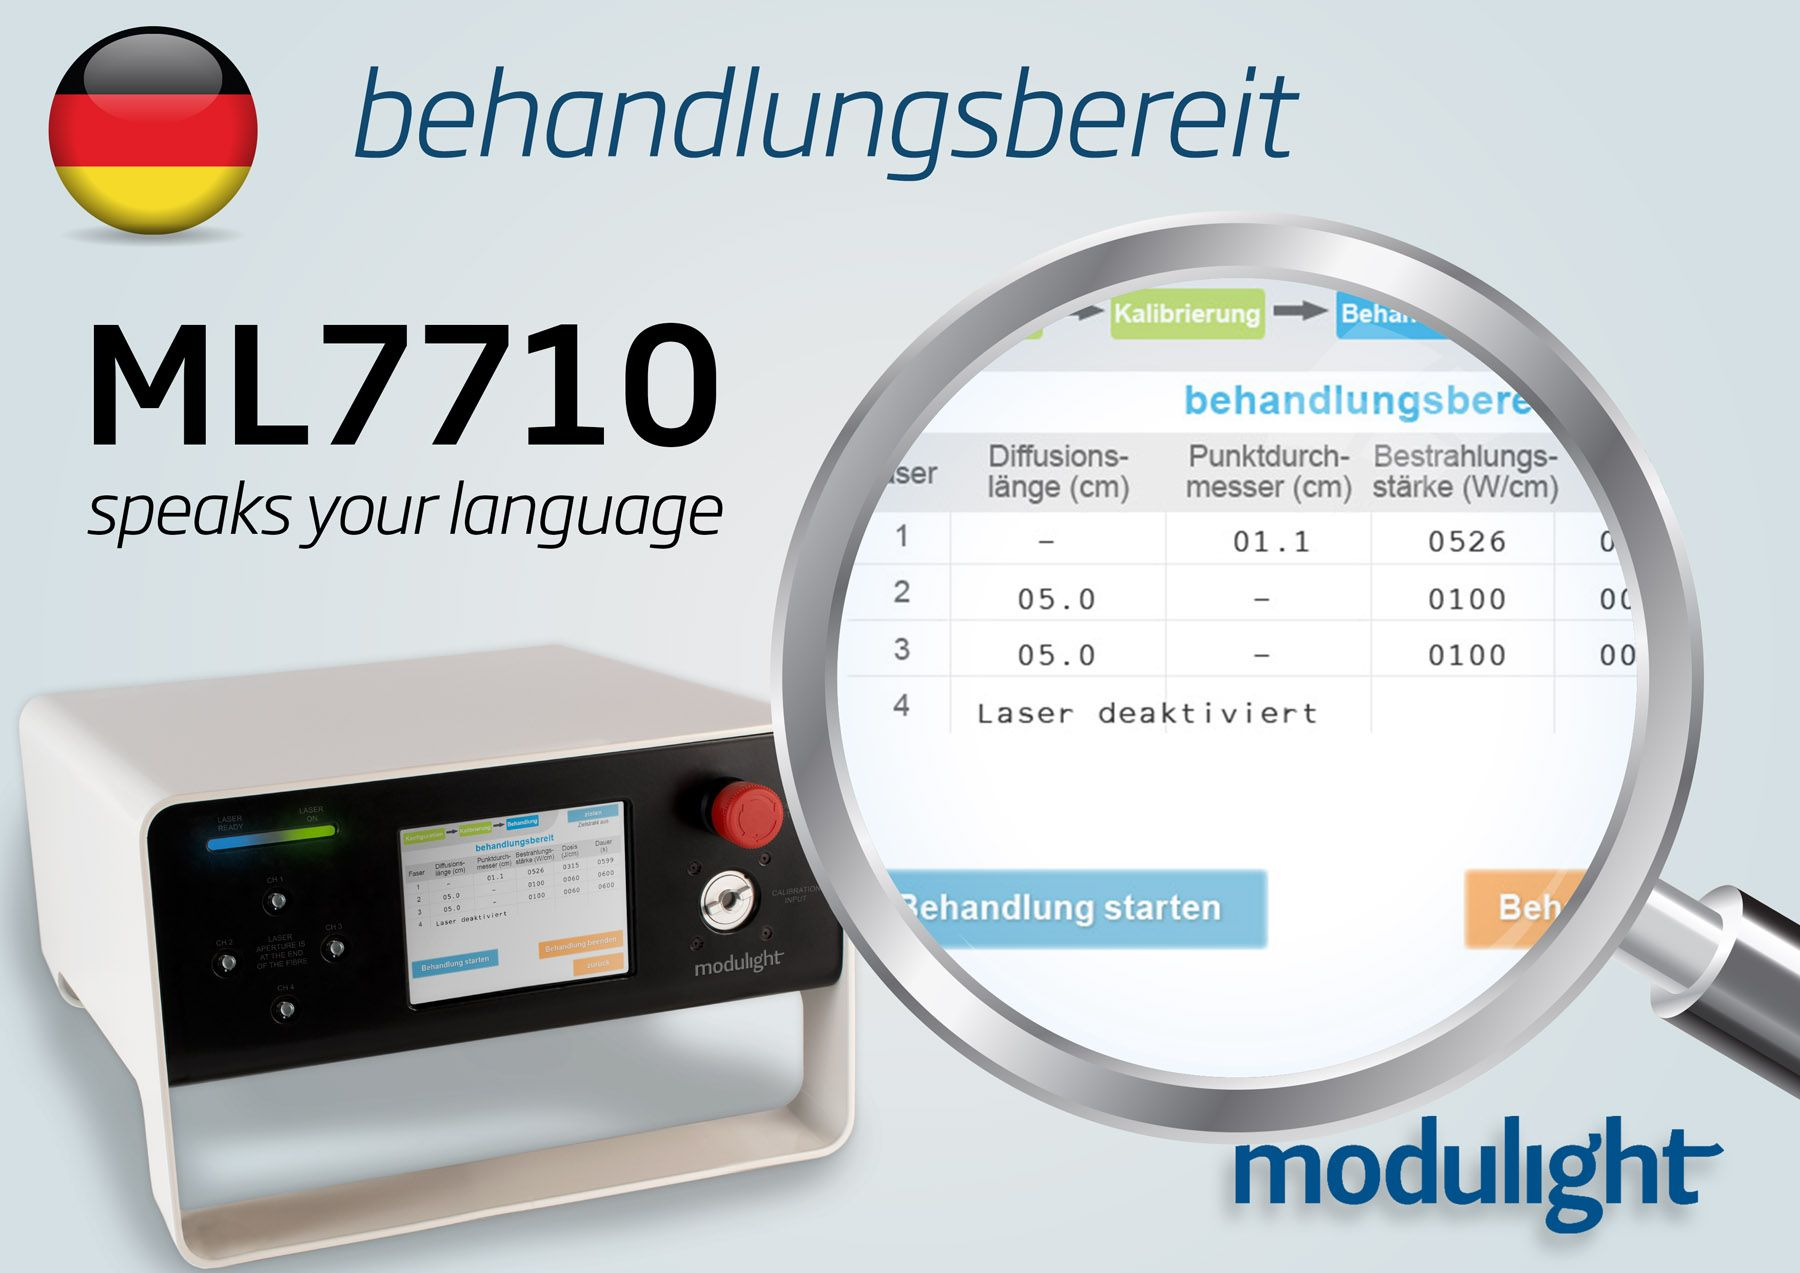 User interface now available in German!